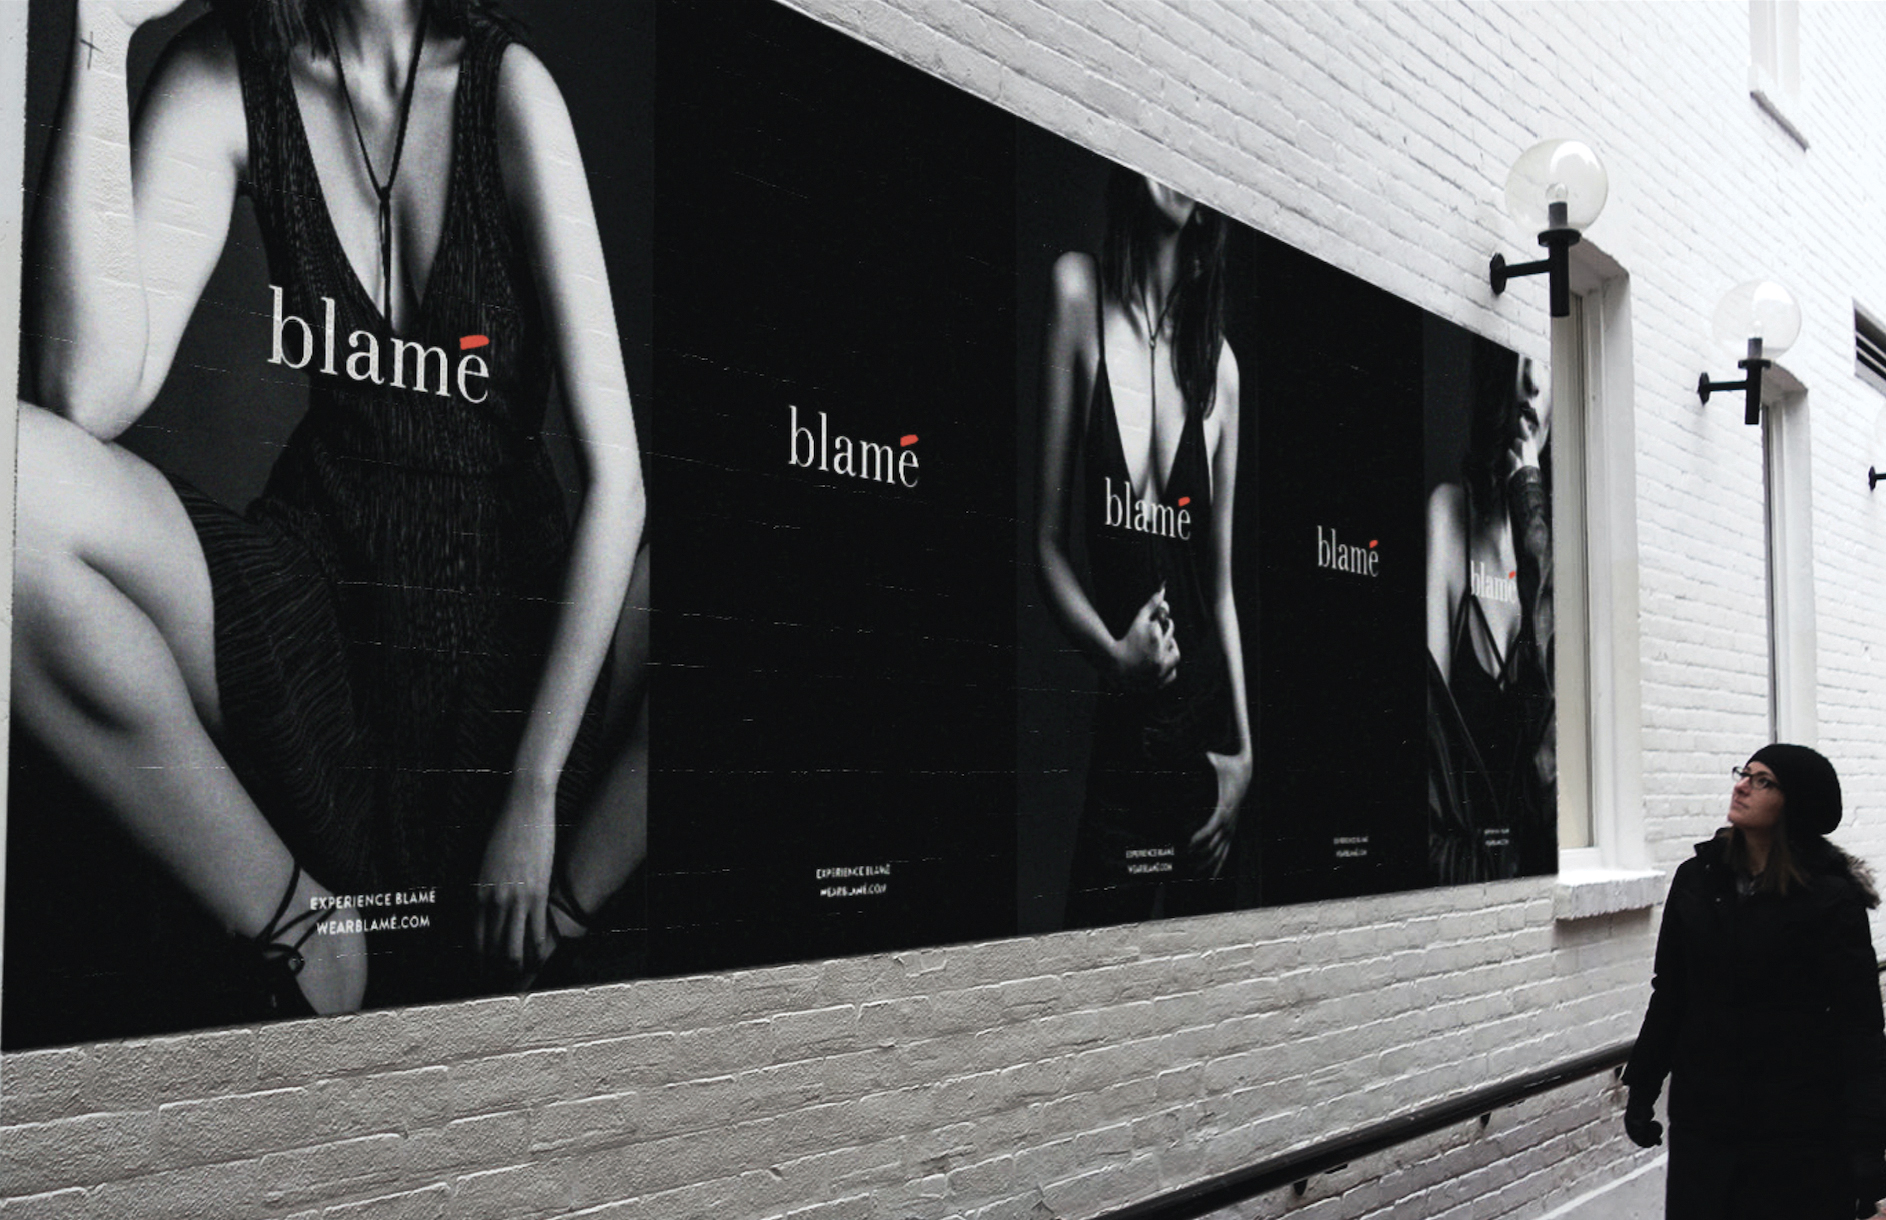 The agency created a pop-up shop selling a fictitious label to call out naysayers who put the blame on rape victims.